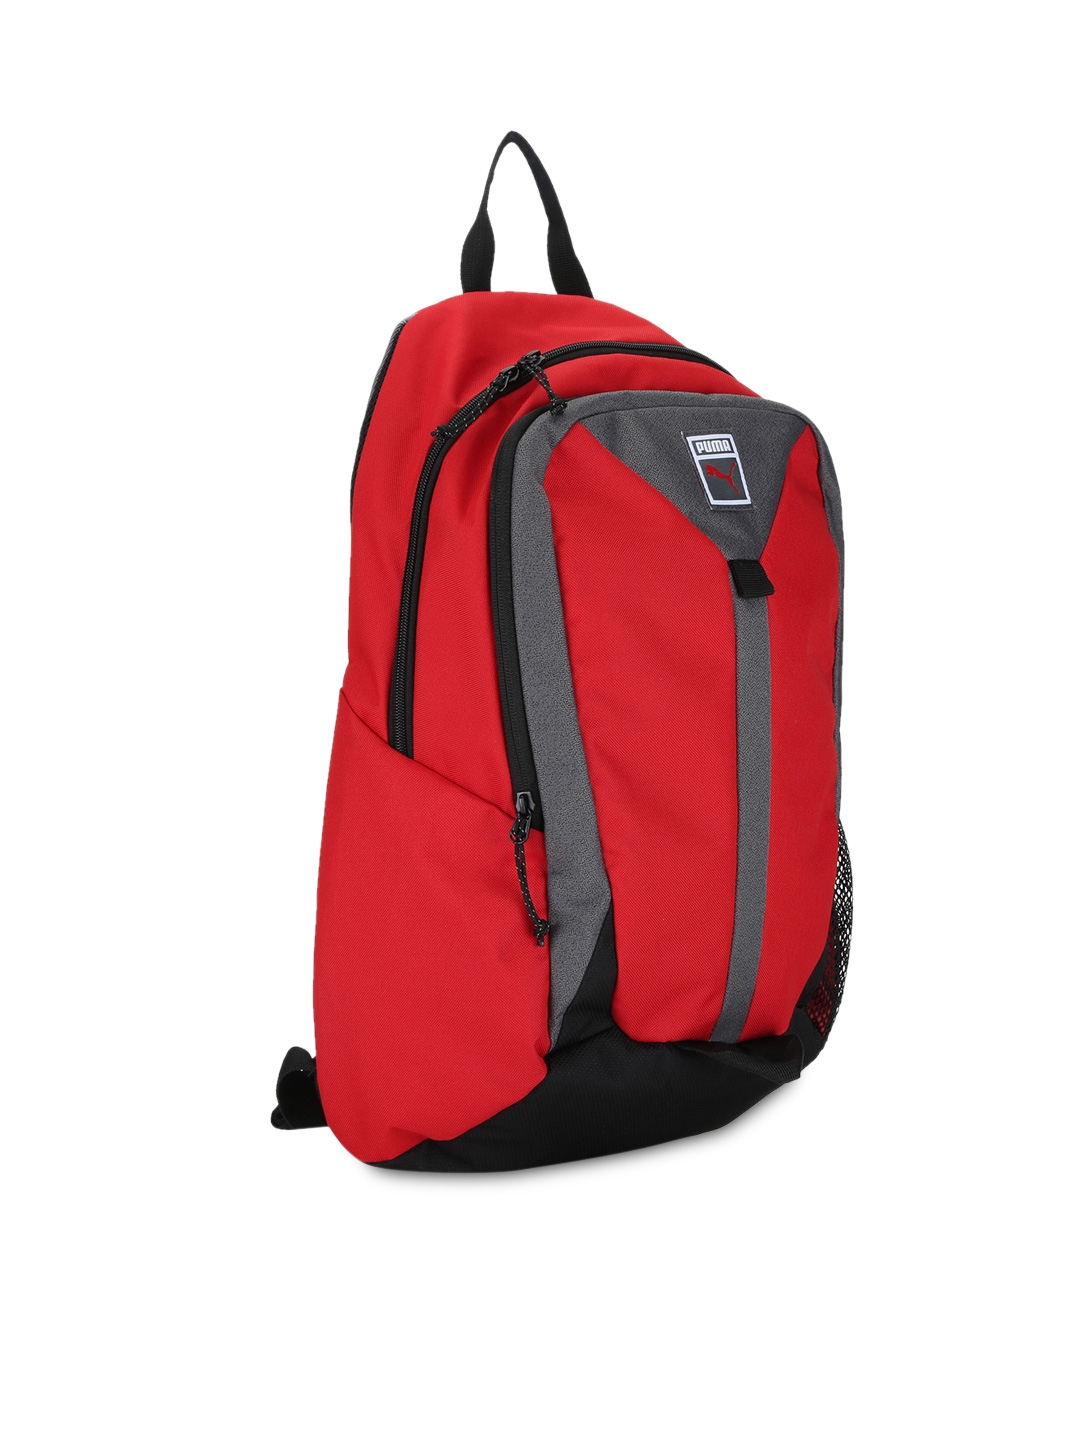 Buy PUMA Unisex Red Backpack - Backpacks for Unisex 1728720  94f7f2691f